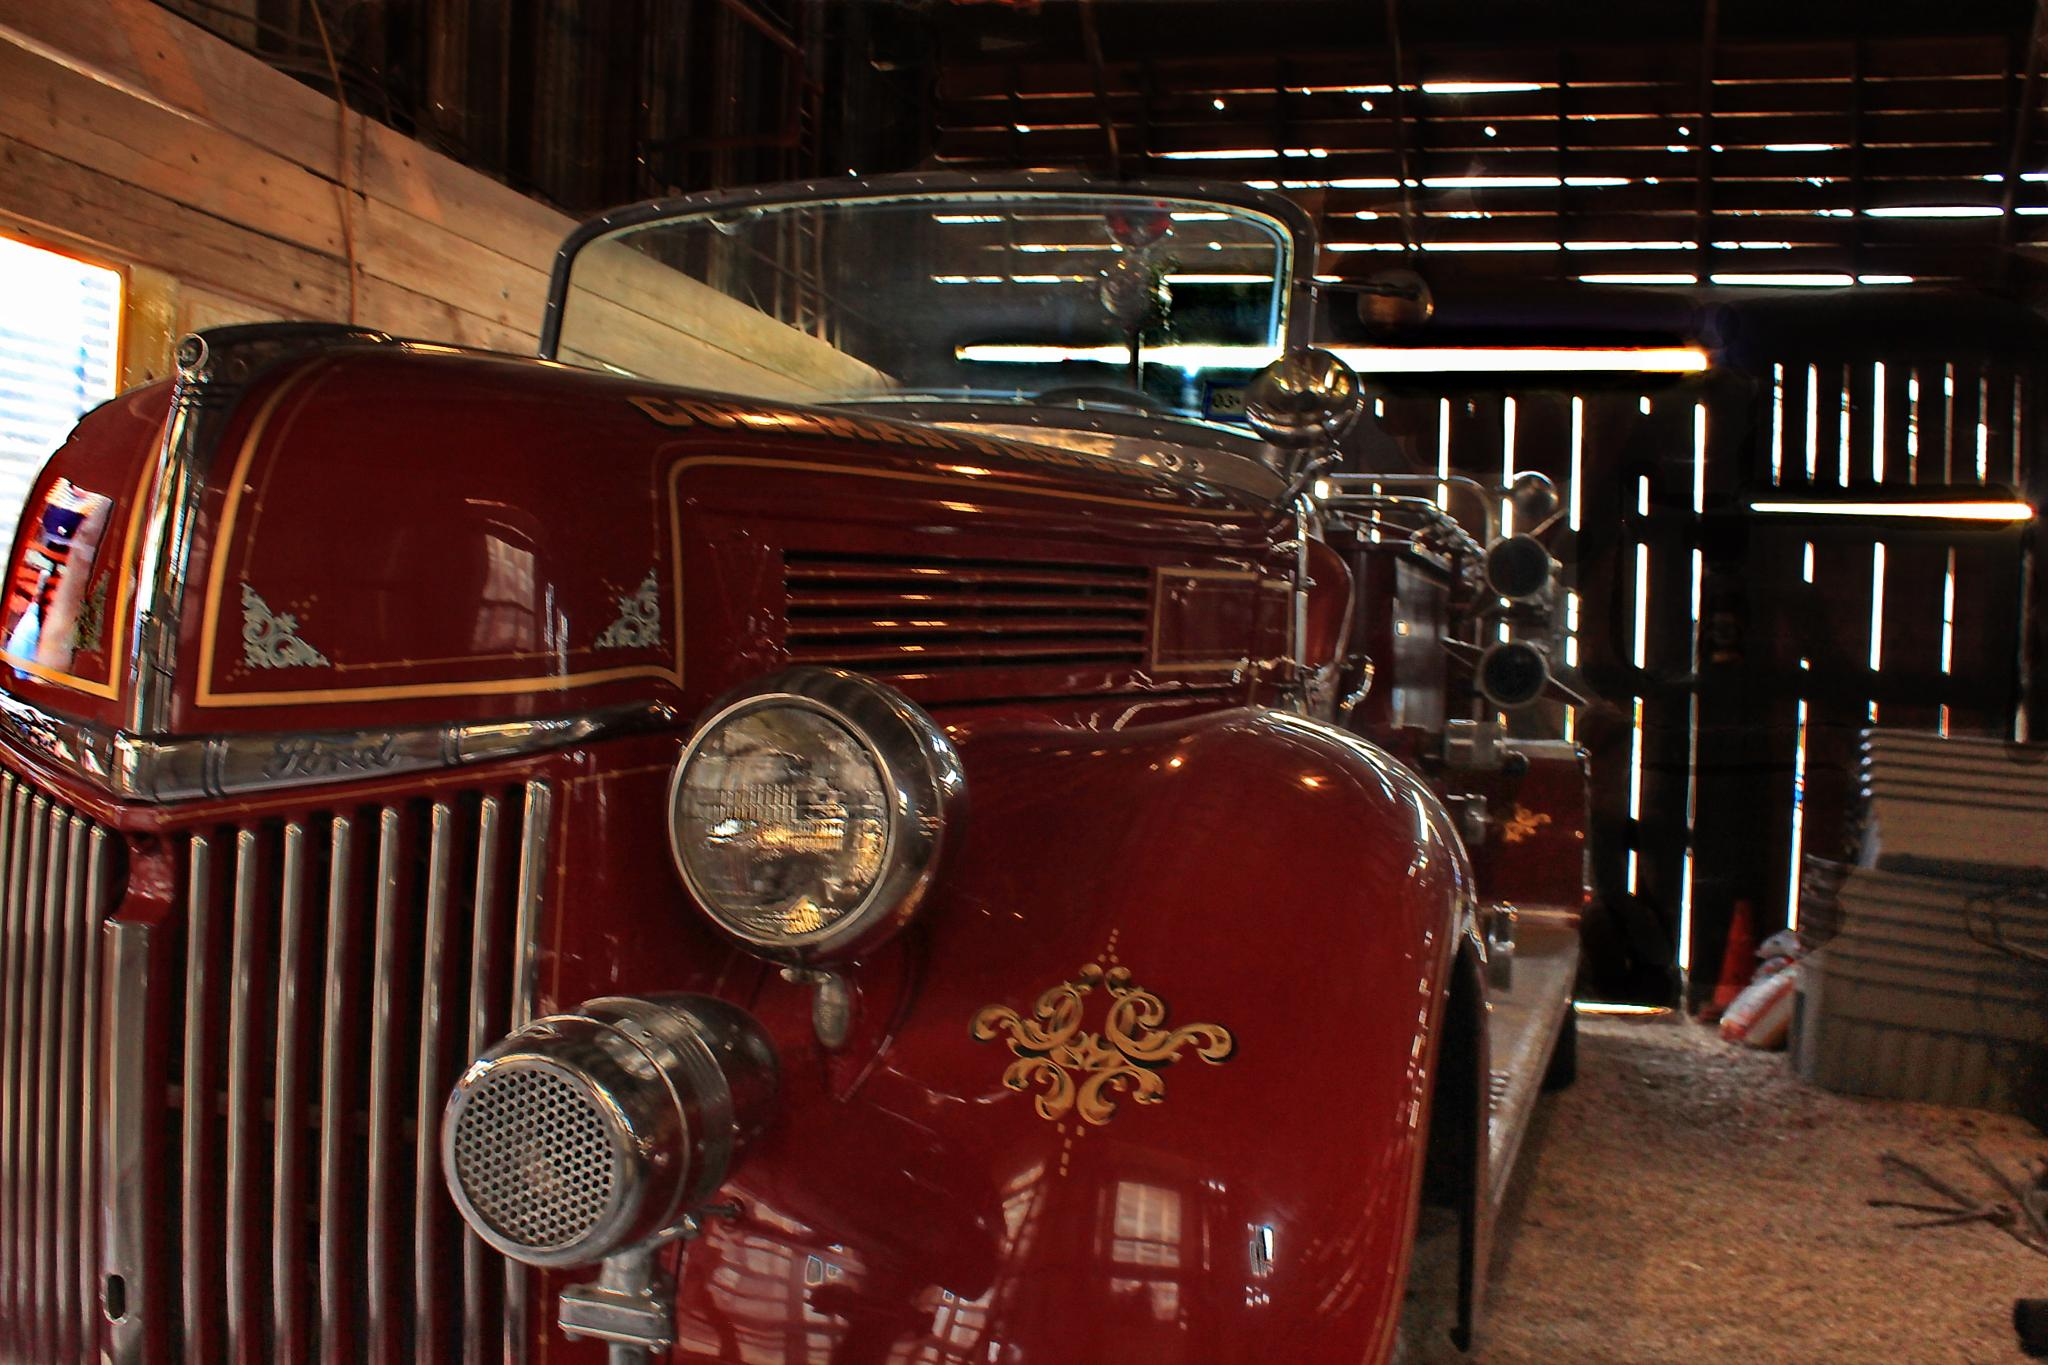 Old Tyme Firetruck by Donna Childres